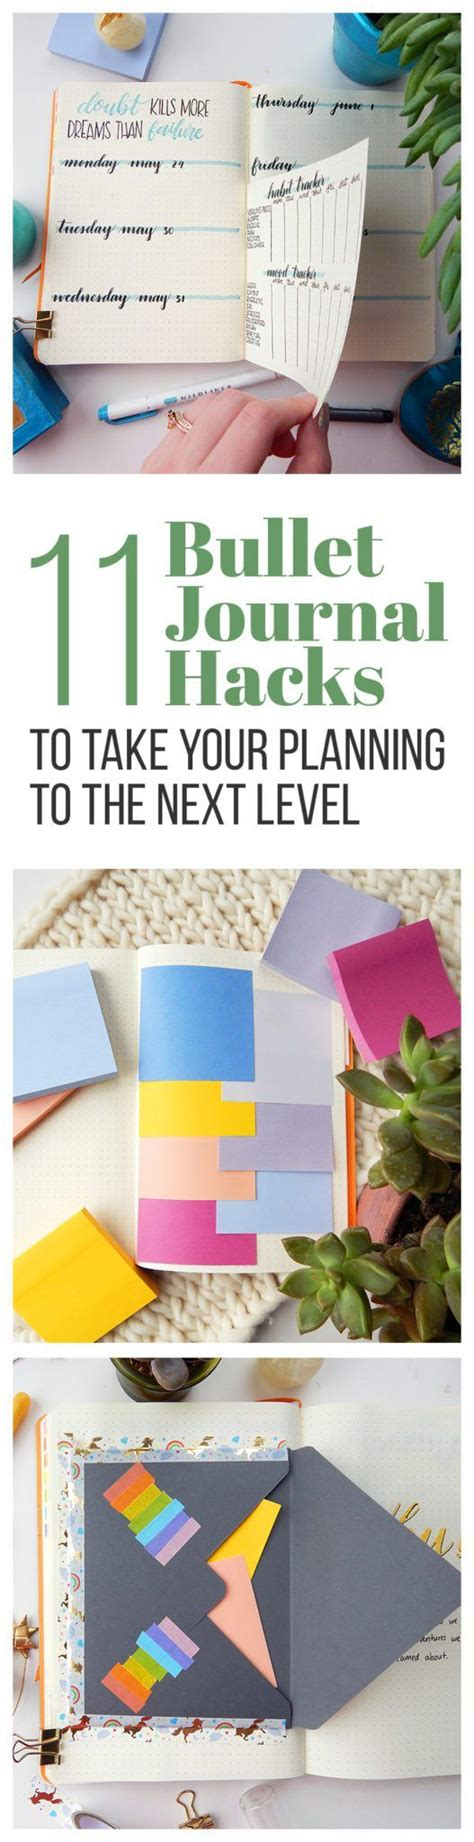 bullet journal hacks 11 bullet journal hacks to take your planning to the next